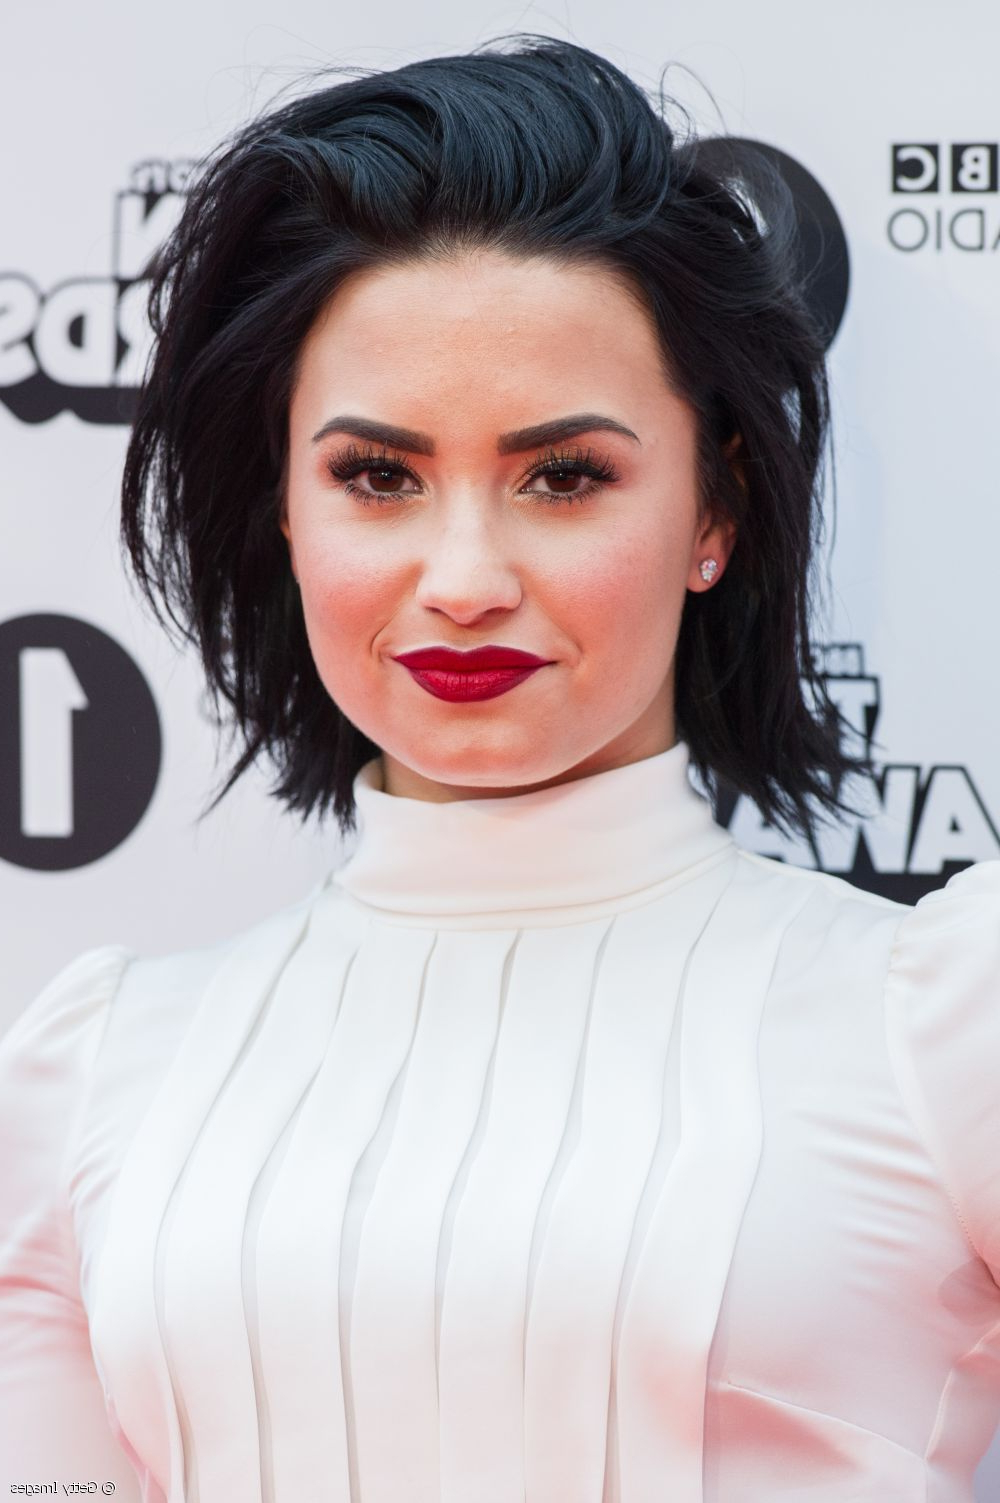 Demi Lovato Goes High Glam: Get Her Red Lipstick + Xxl Lashes Makeup! Intended For Demi Lovato Short Haircuts (Gallery 18 of 25)